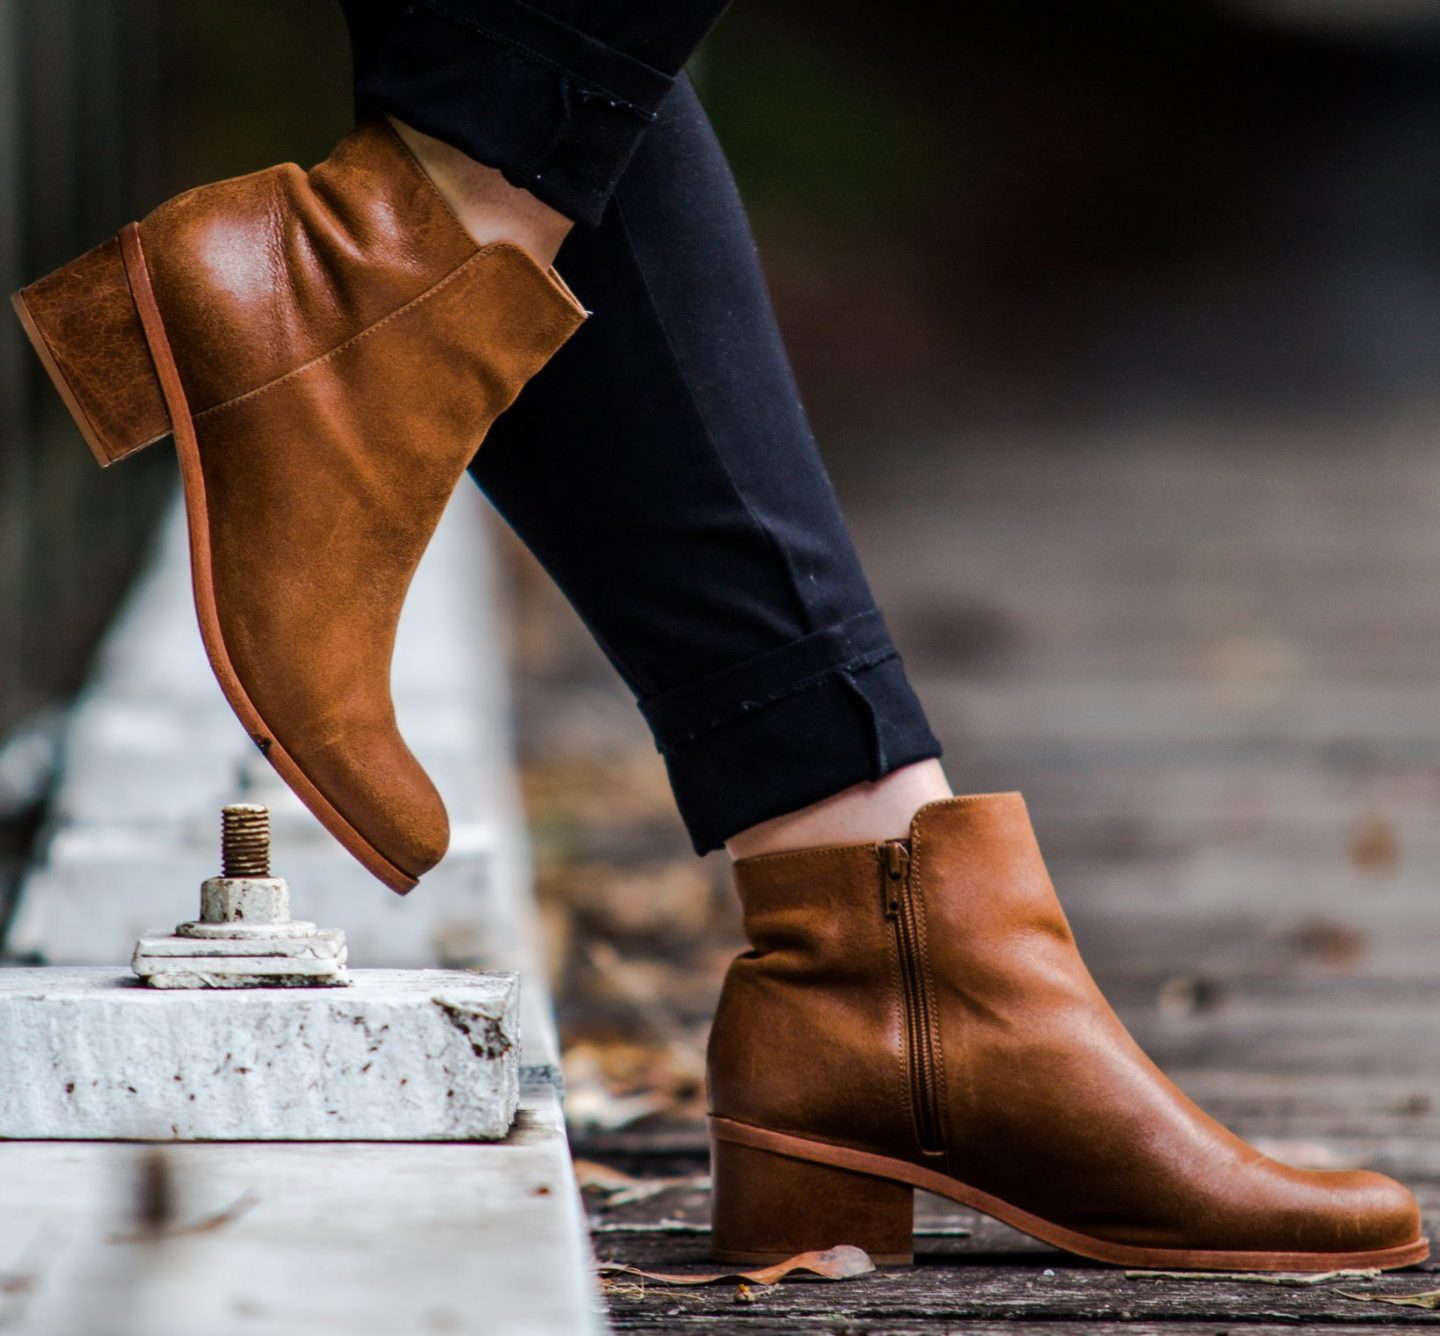 Ethical boots perfect for fall